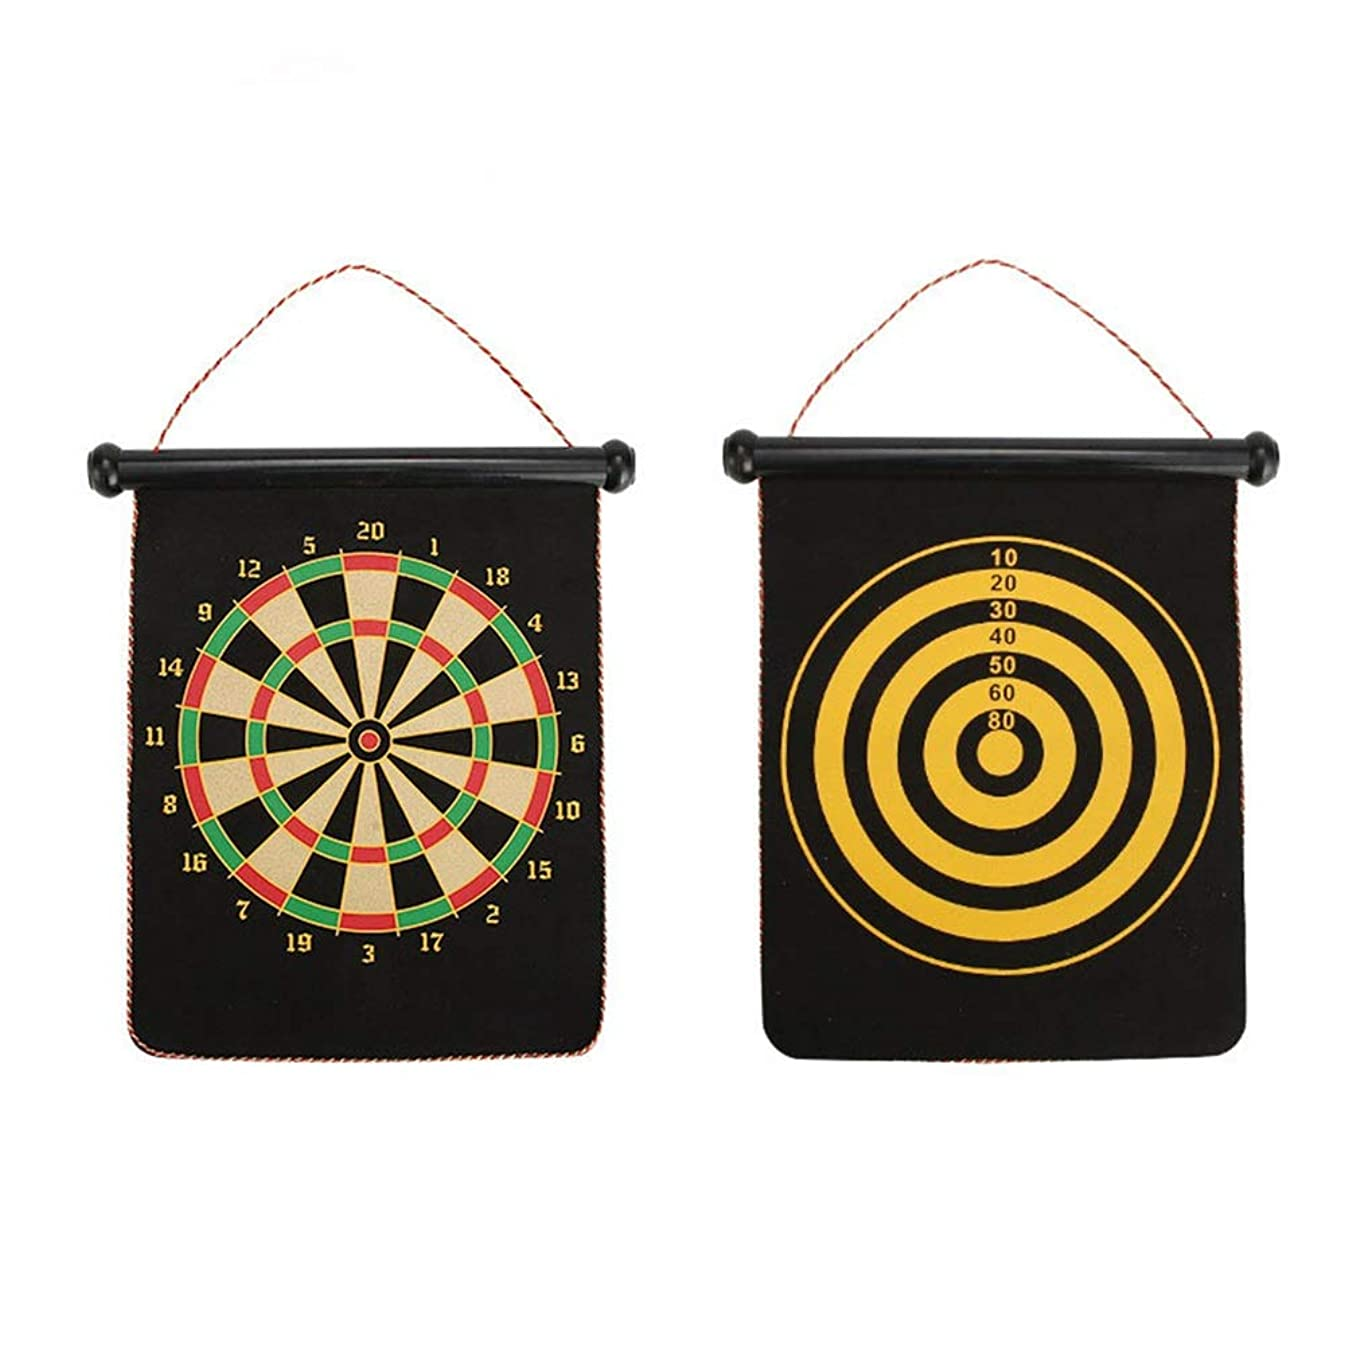 Sdcvopl Dartboard Magnetic Dartboard Sets 4 Reversible Darts Rolling Two Sided Bullseye Game Magnetic Safety Dart Board Kids Family Leisure Sports (Color, Size : One Size)